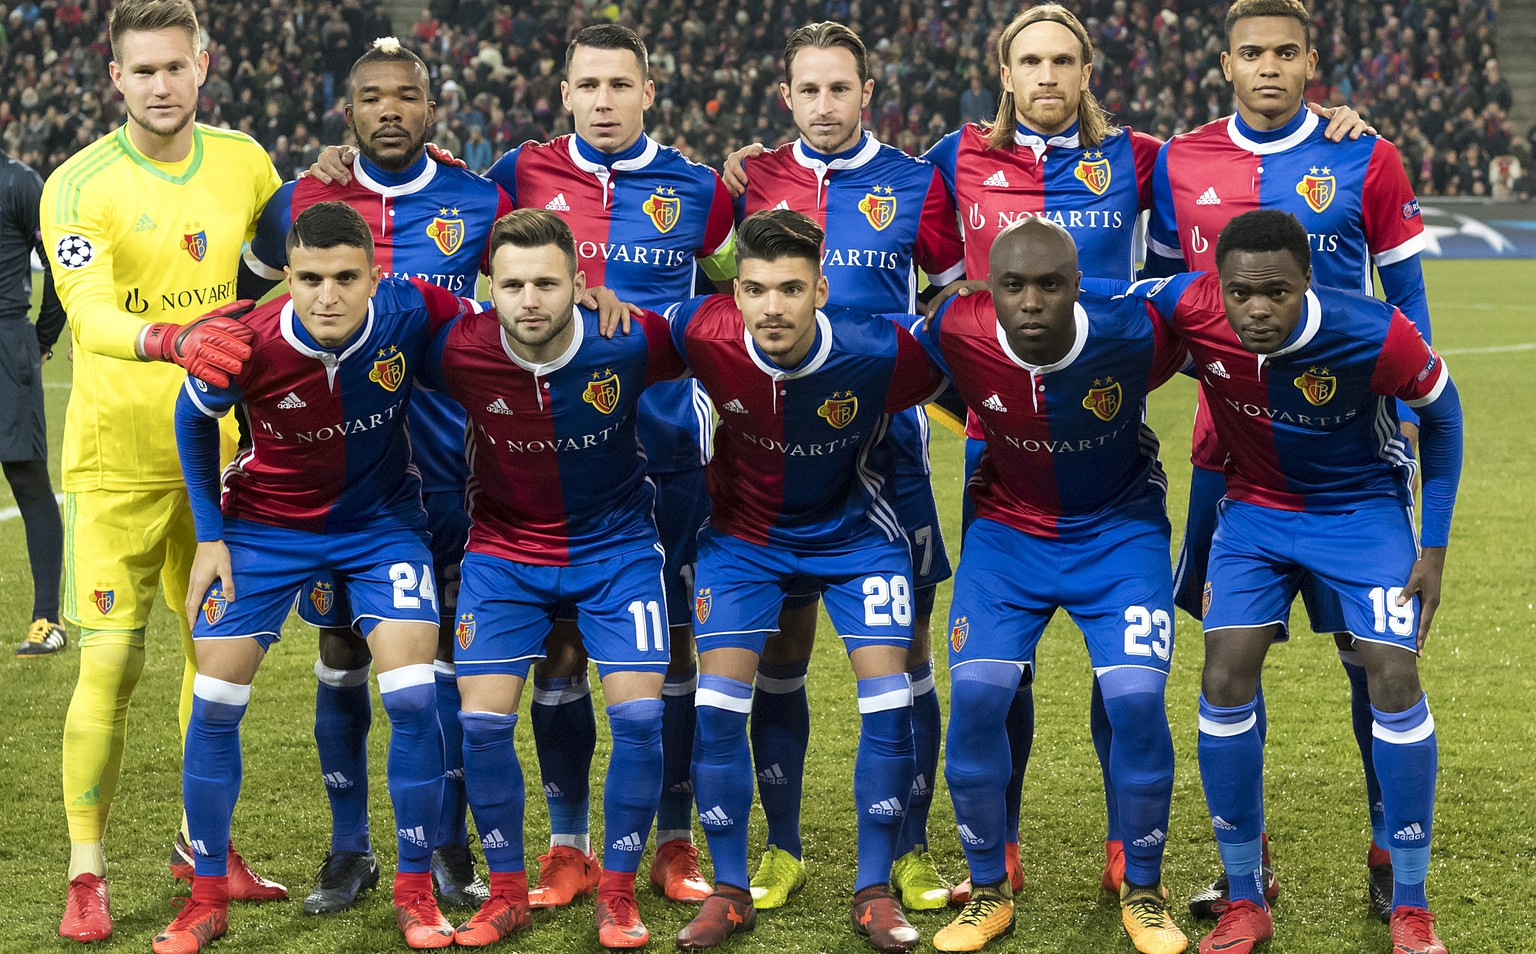 BAsel's players pose prior to the UEFA Champions League Group stage Group A matchday 5 soccer match between Switzerland's FC Basel 1893 and England's Manchester United FC at the St. Jakob-Park stadium in Basel, Switzerland, on Wednesday, November 22, 2017. (KEYSTONE/Georgios Kefalas)